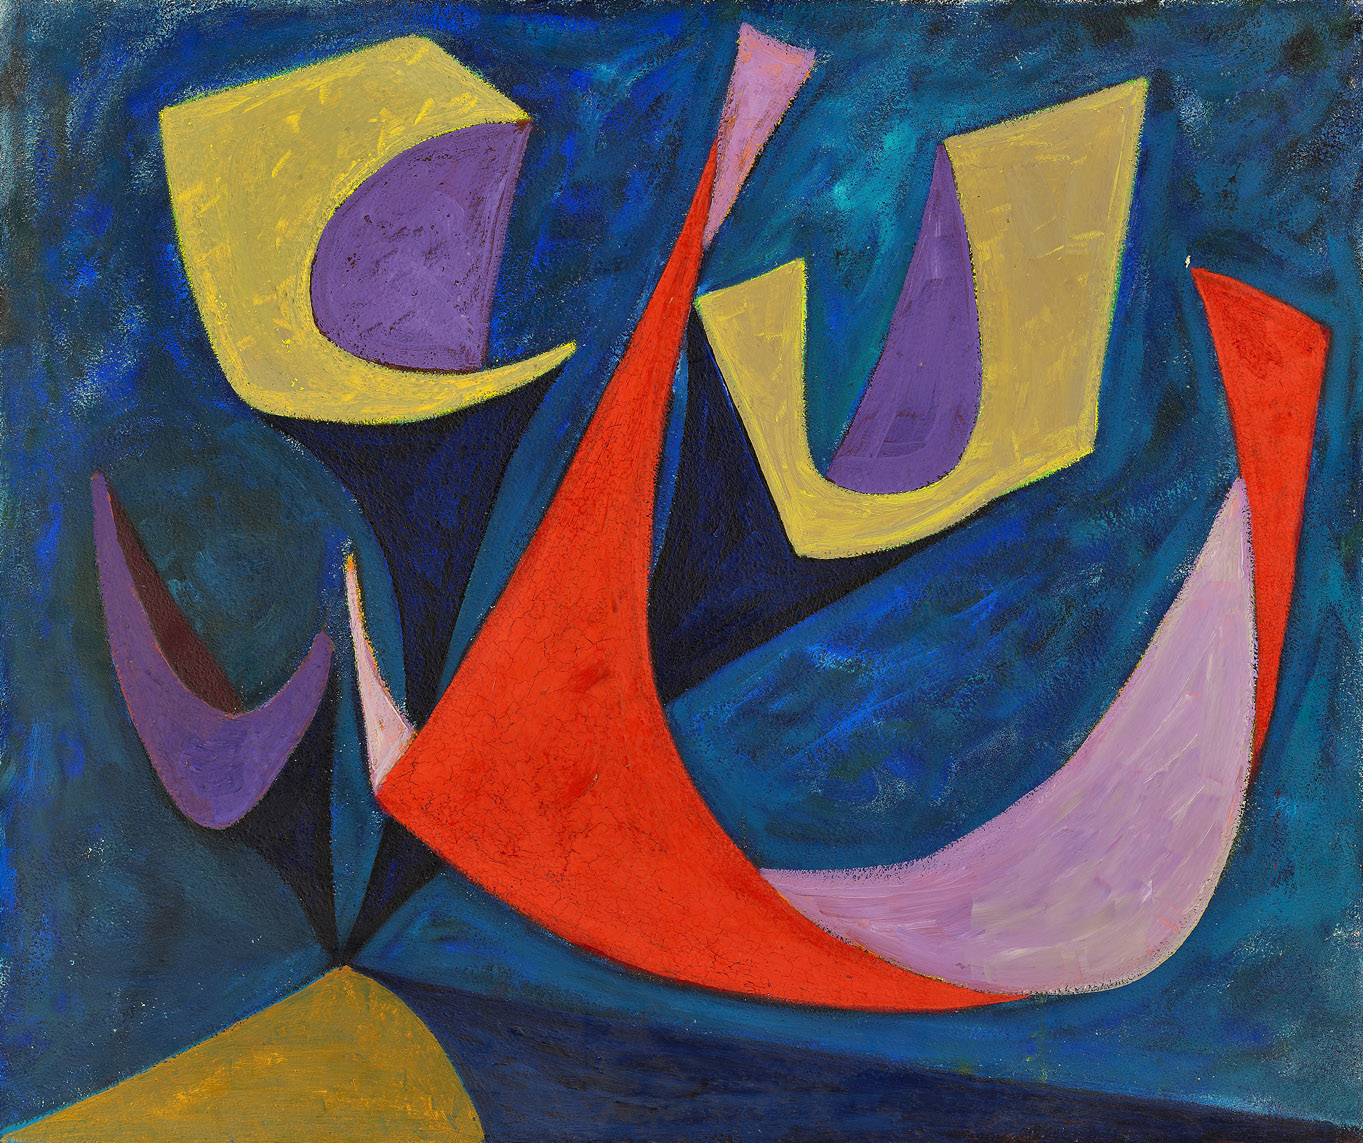 Untitled, Magical Forms , 1948  oil on canvas 30 x 36 inches; 76.2 x 91.4 centimeters